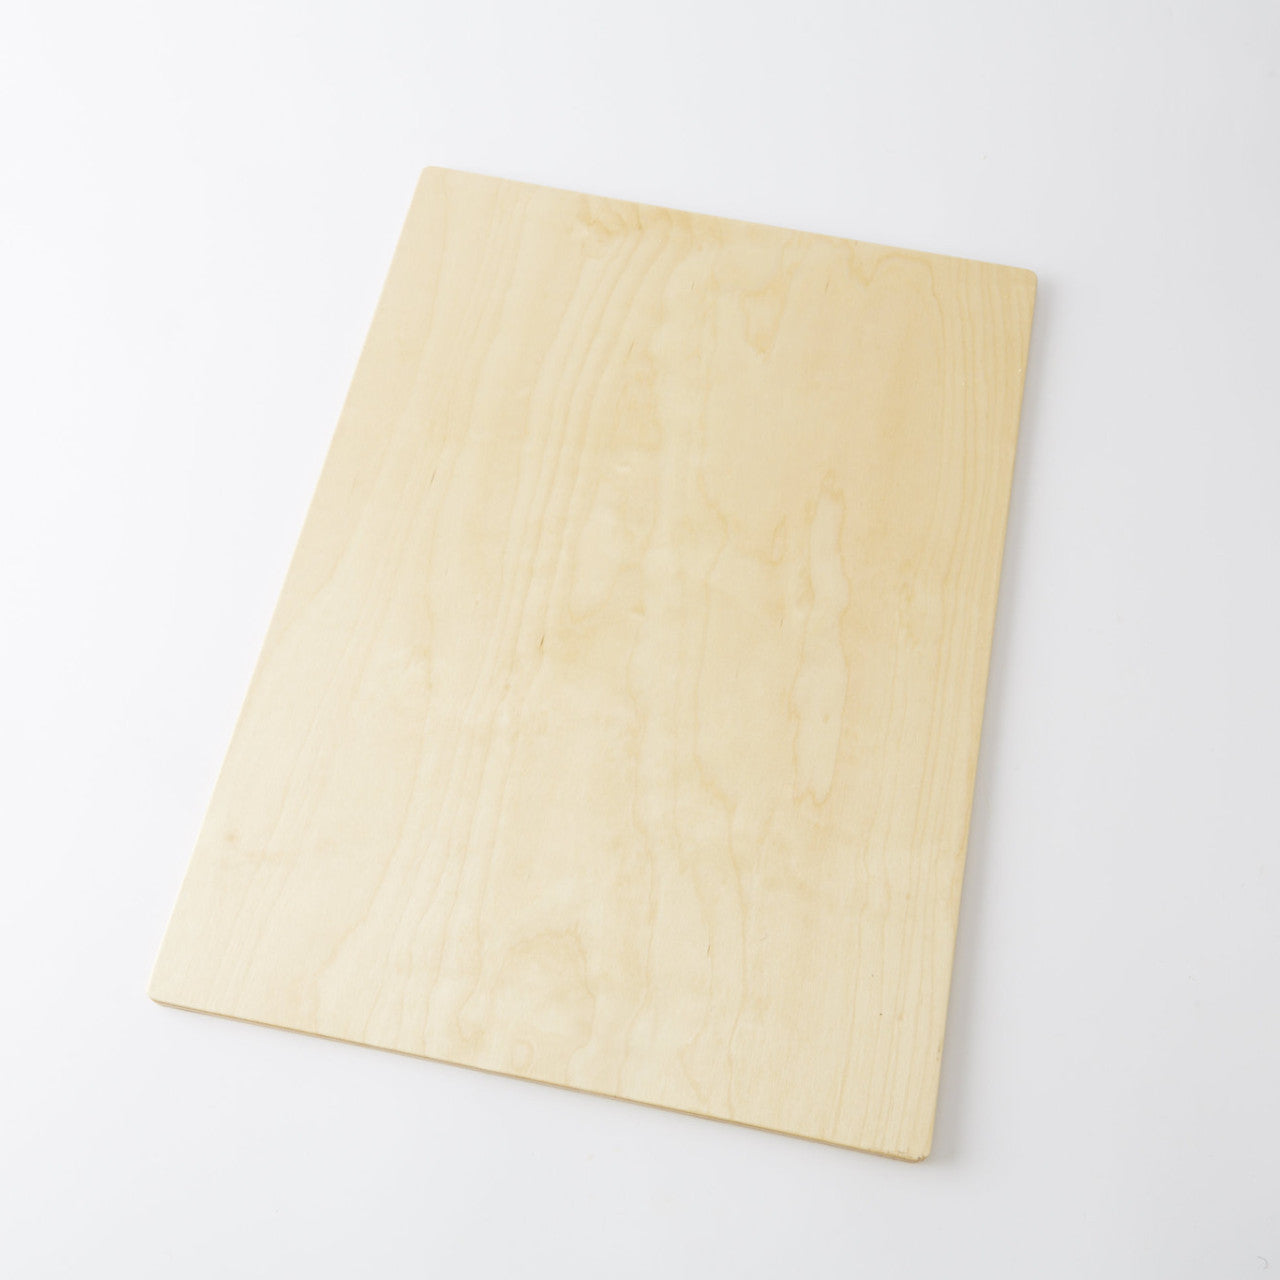 Large Wooden Painting Board